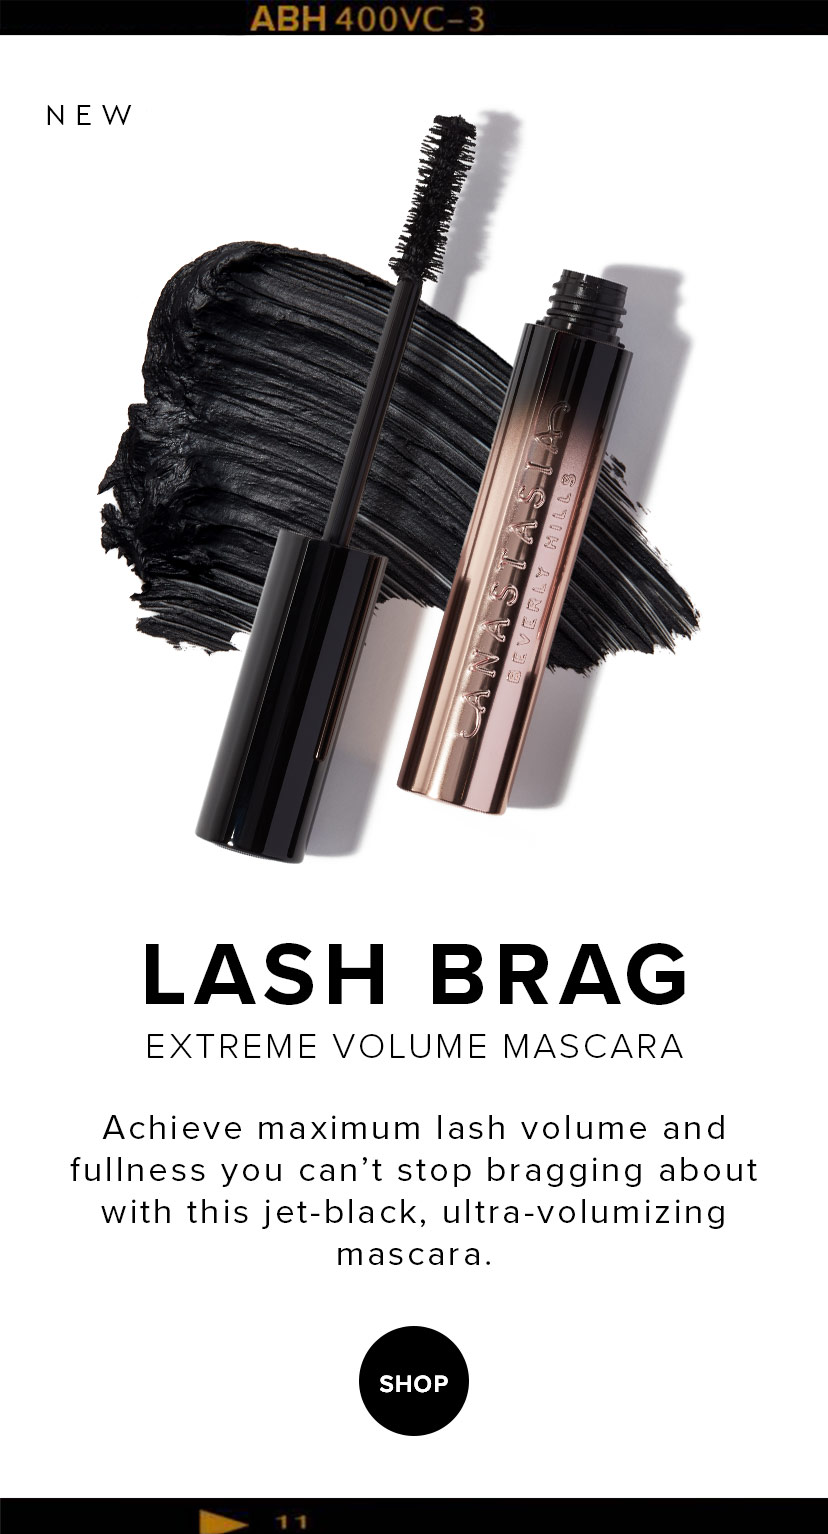 Lash Brag Mascara - Achieve maximum lash volume and fullness you can't stop bragging about with the jet black, ultra-volumizing mascara